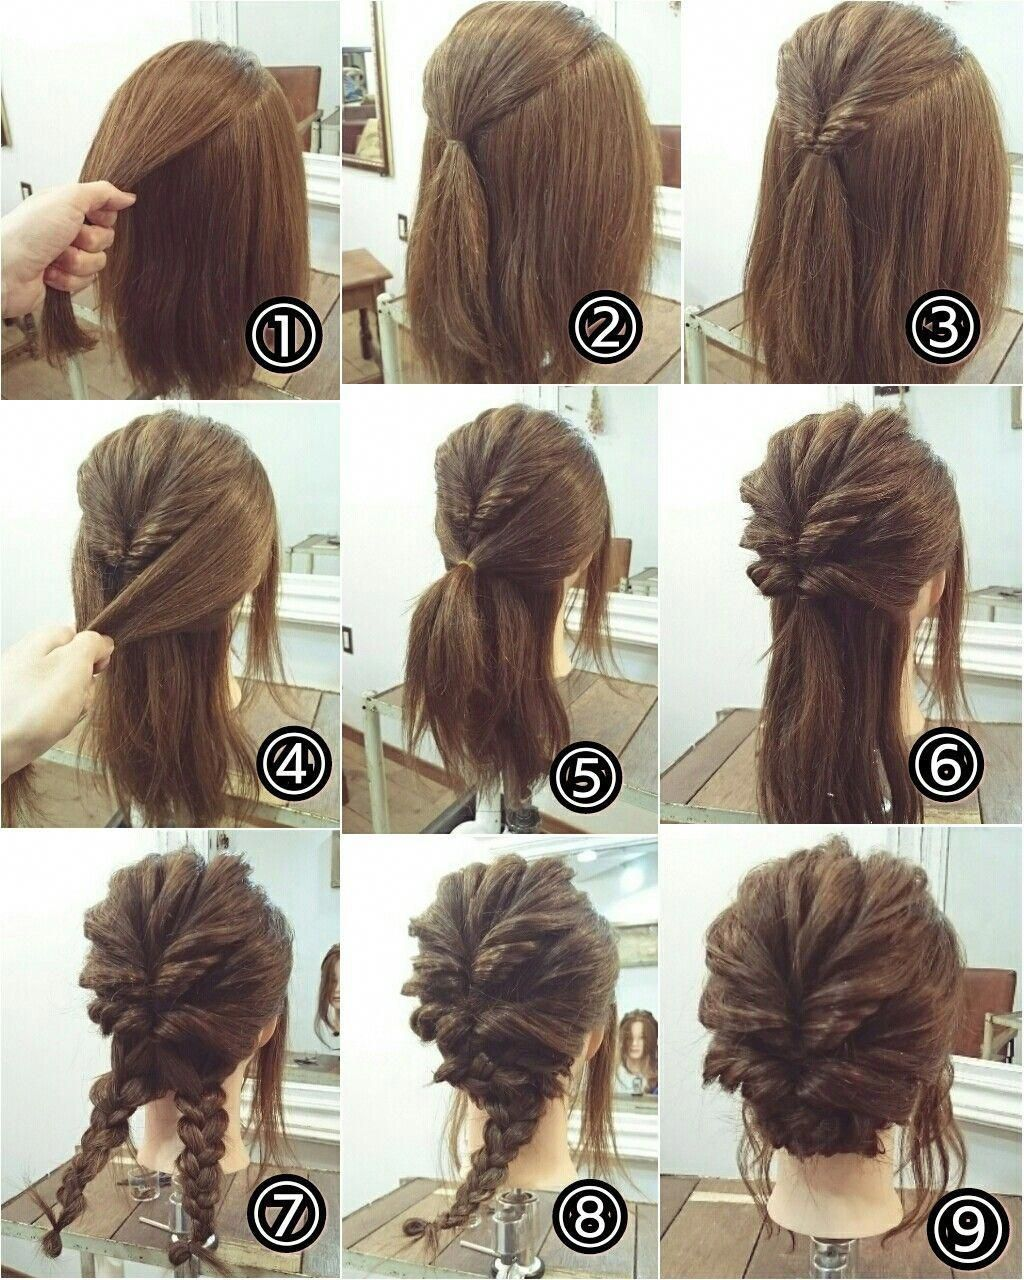 Areas Can Be Braided Curled Or Pinned To Prior To Being Captured By The Hair Tie This Style Is Ideal Hair Styles Long Hair Styles Medium Length Hair Styles